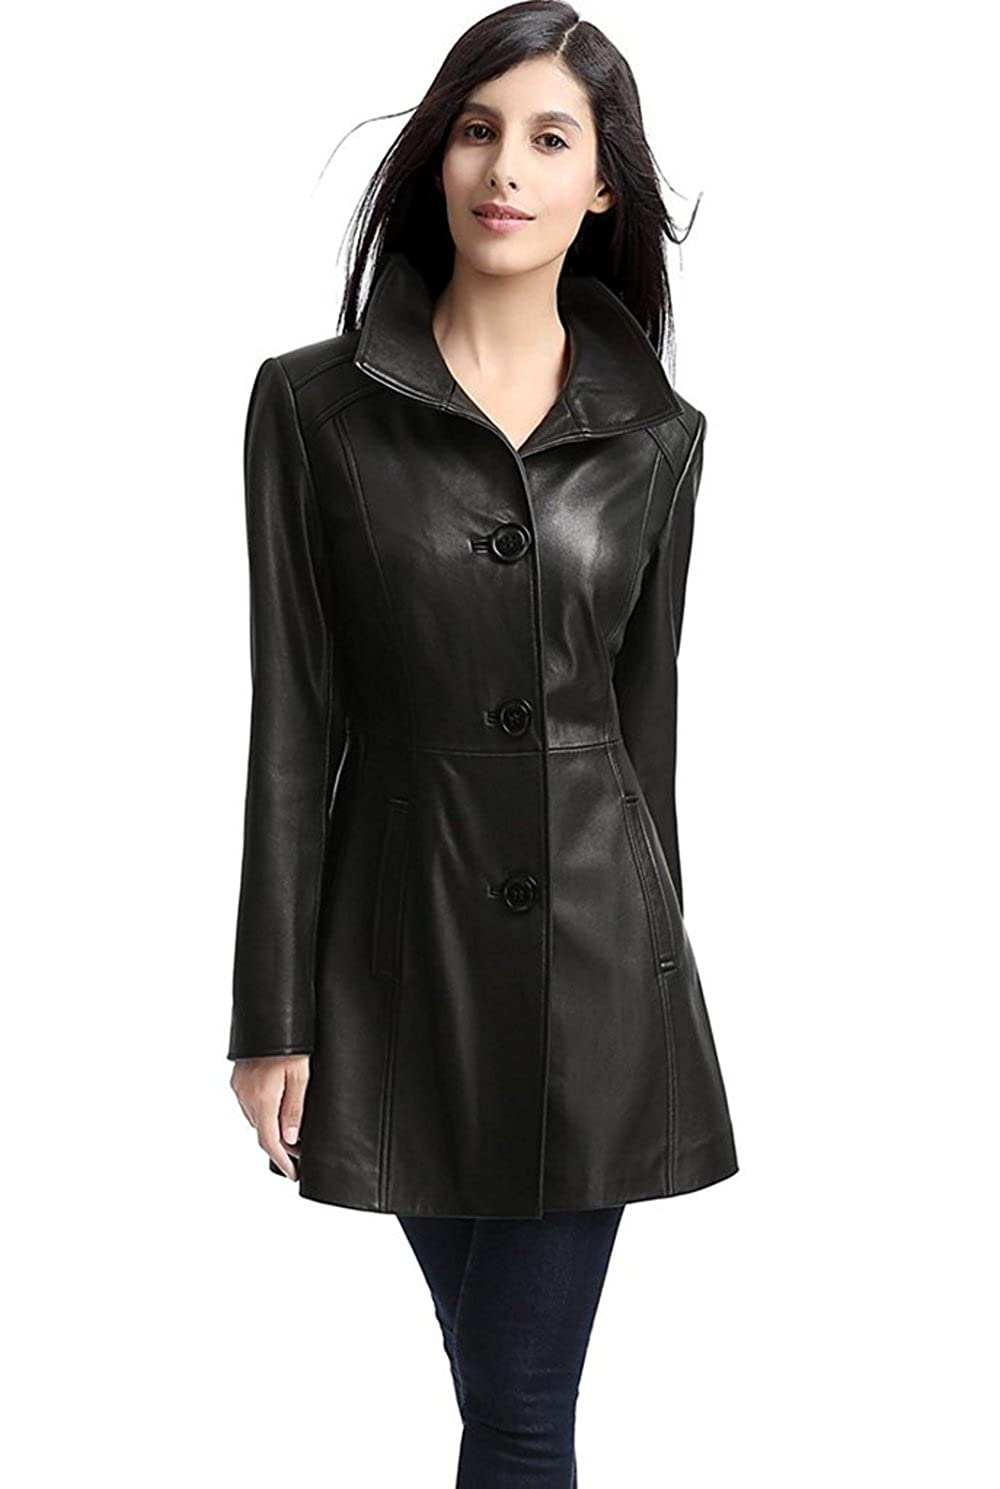 Number Seven Long Leather Trench Coat for Women and Ladies